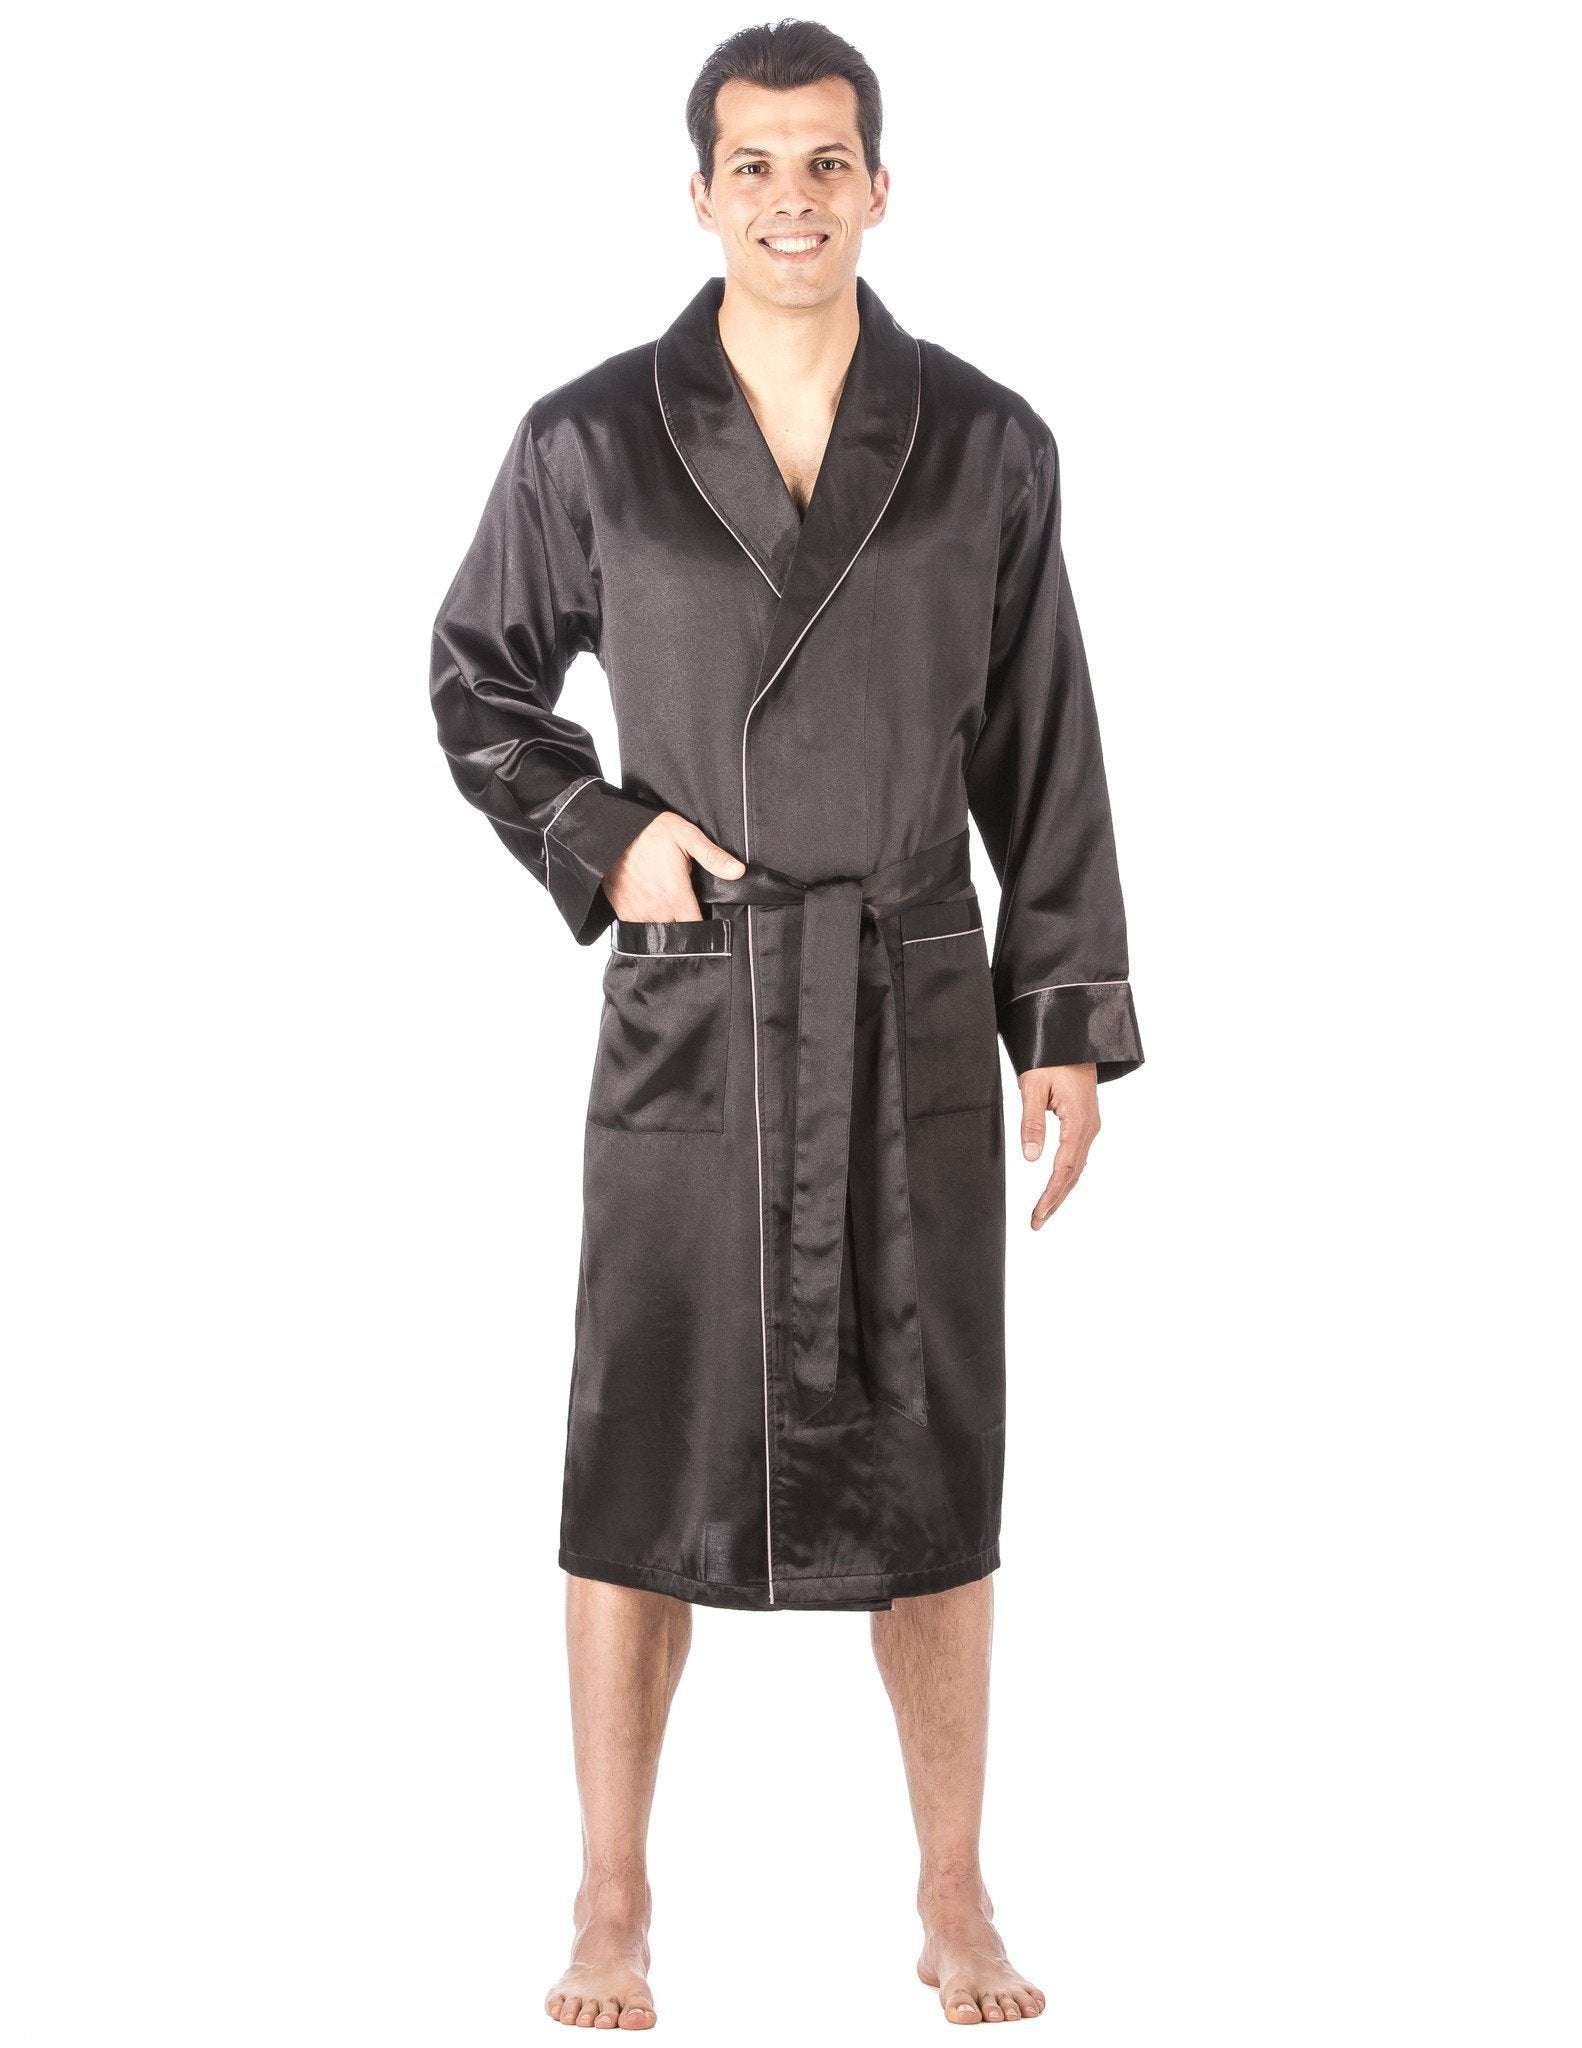 Men's Premium Satin Robe - Solid Black